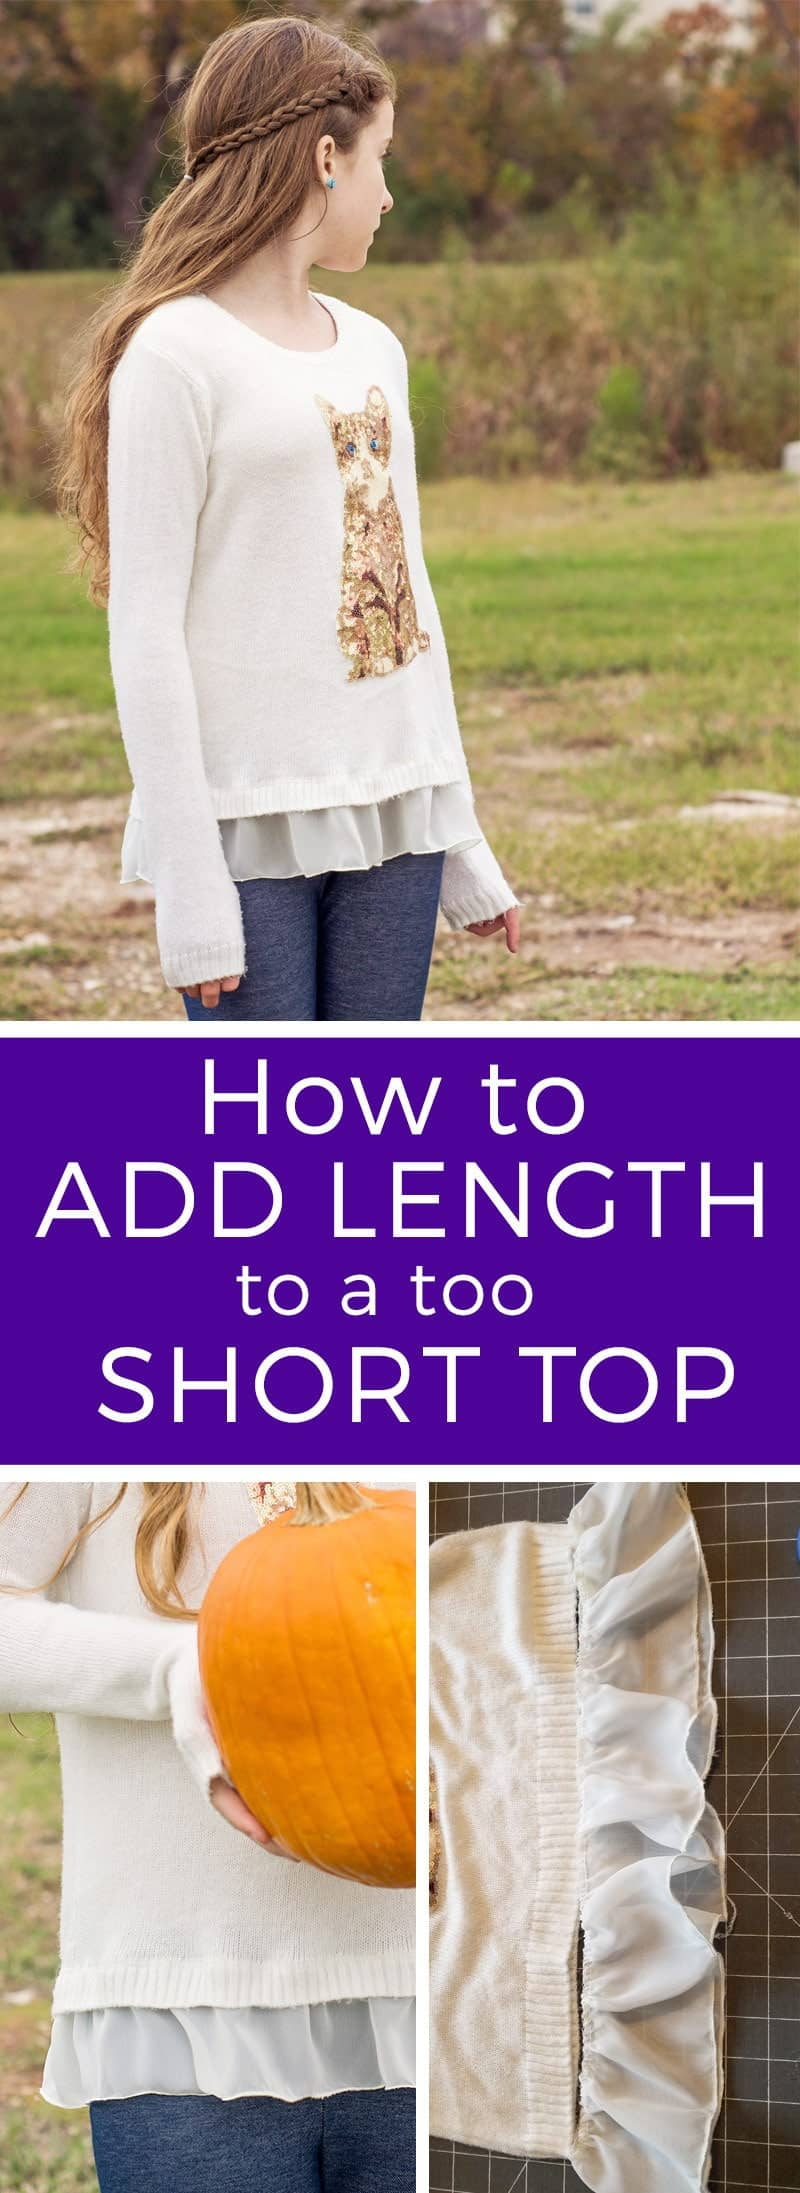 How to Lengthen a Too Short Top